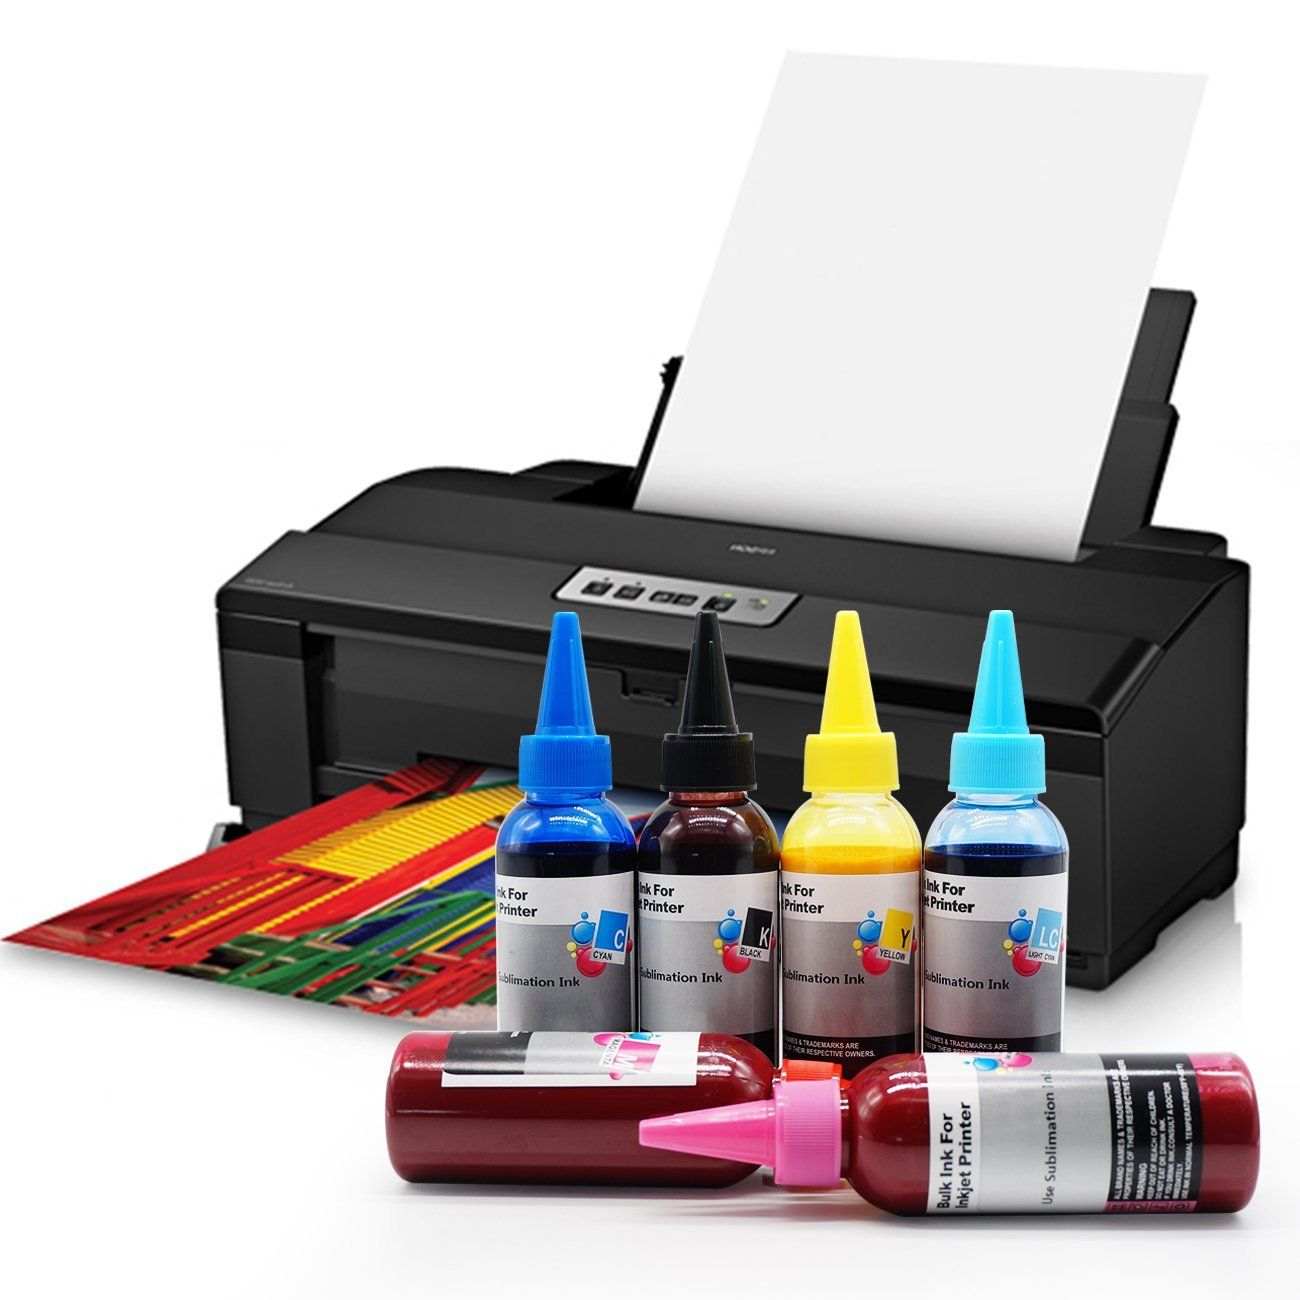 Printers Jack 600ml Sublimation Ink for Inkjet Printer Press